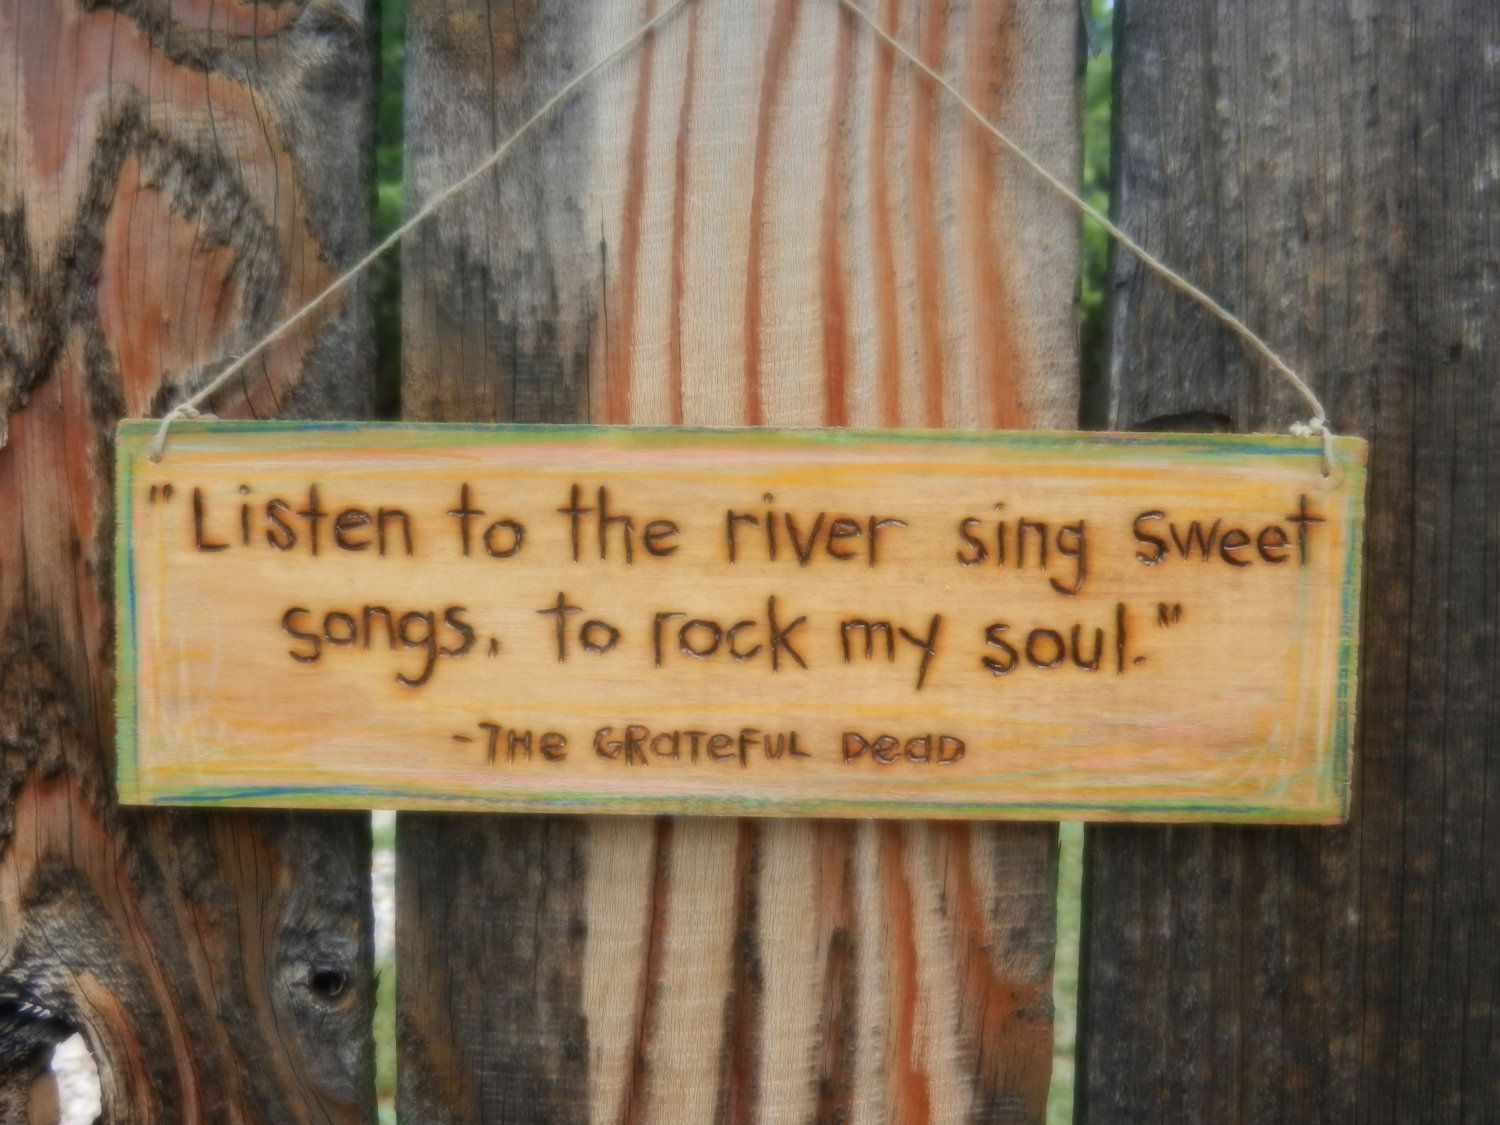 Listen to the river sing sweet songs, to rock my soul\